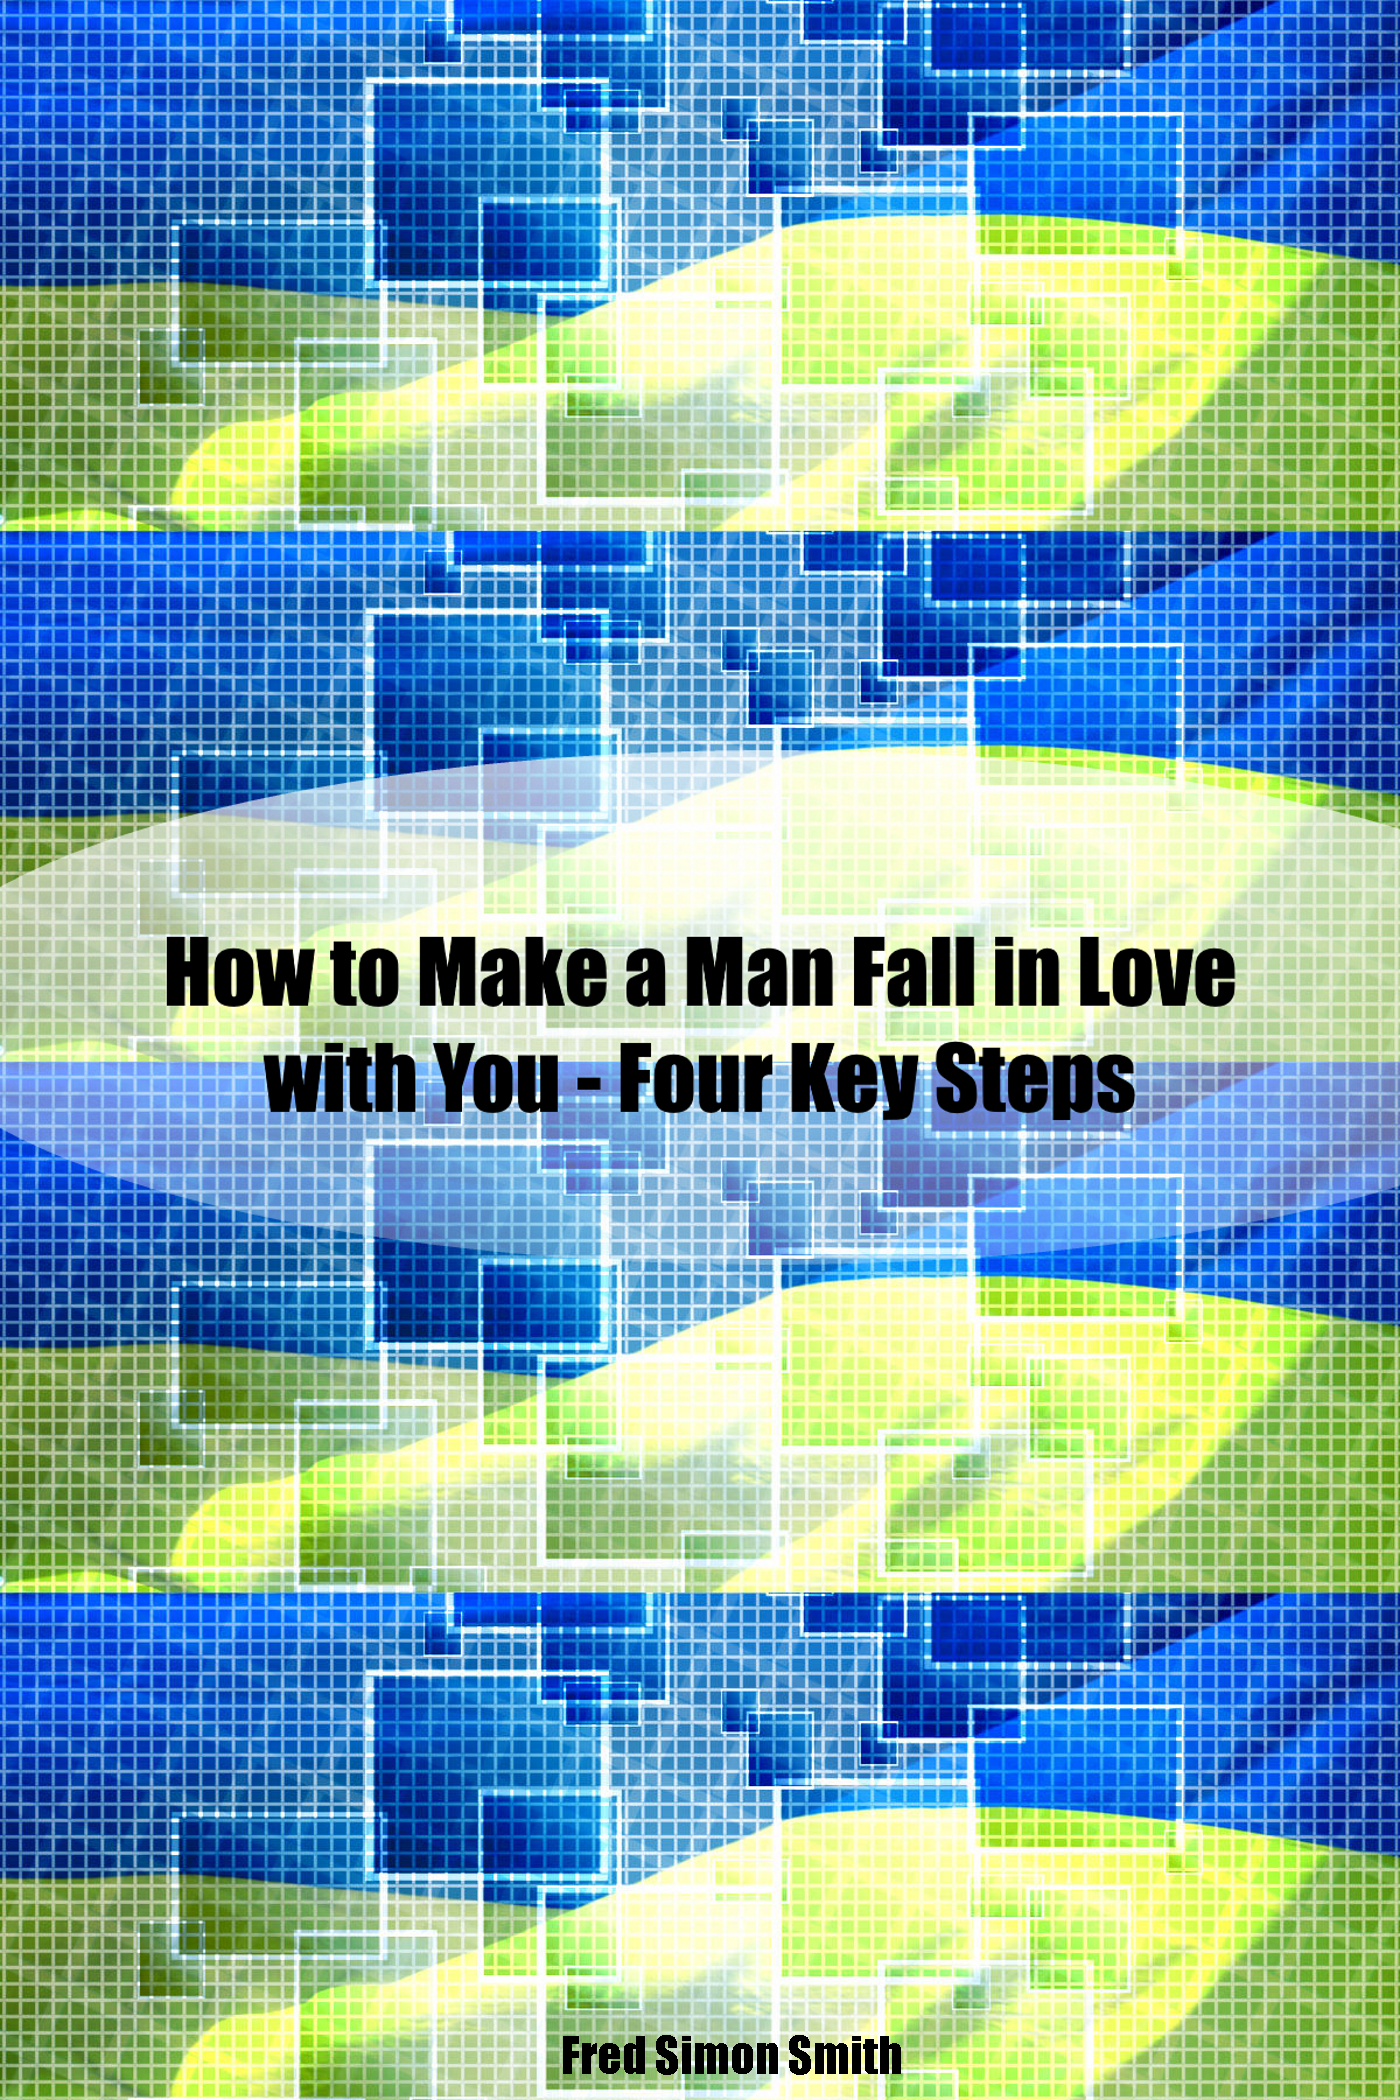 Smashwords – How to Make a Man Fall in Love With You - Four Key